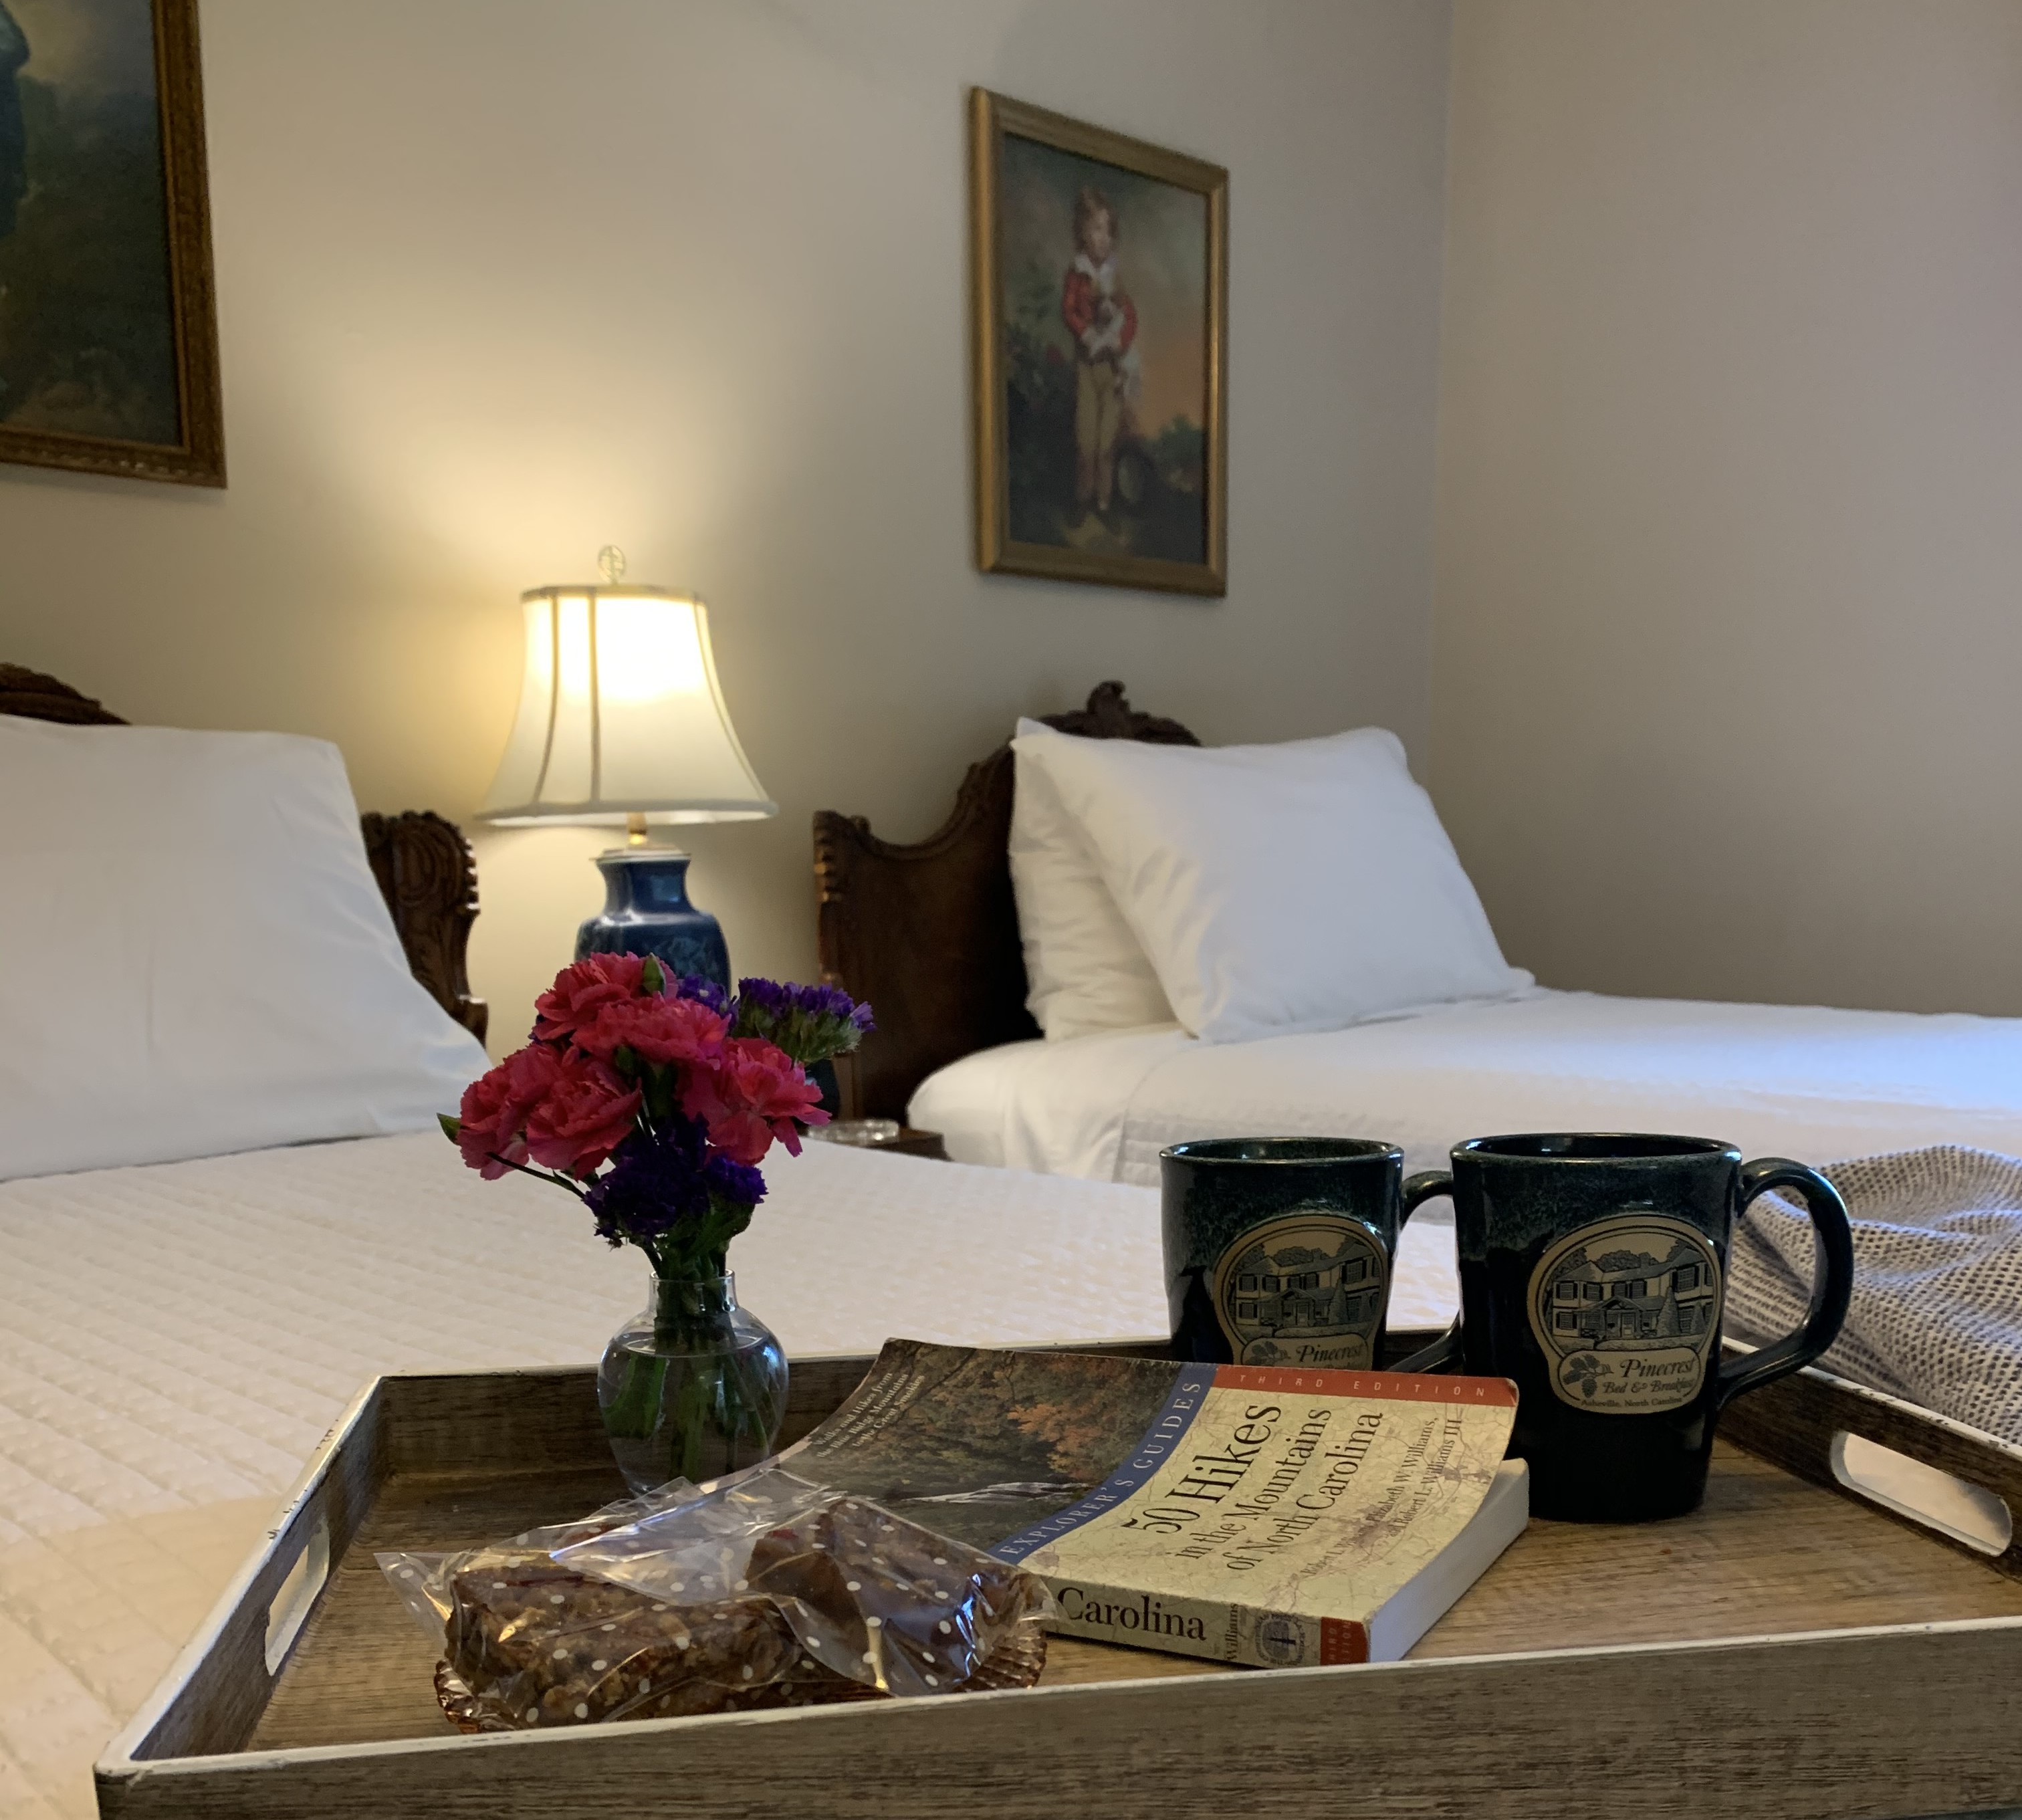 tray on bed with books and mugs